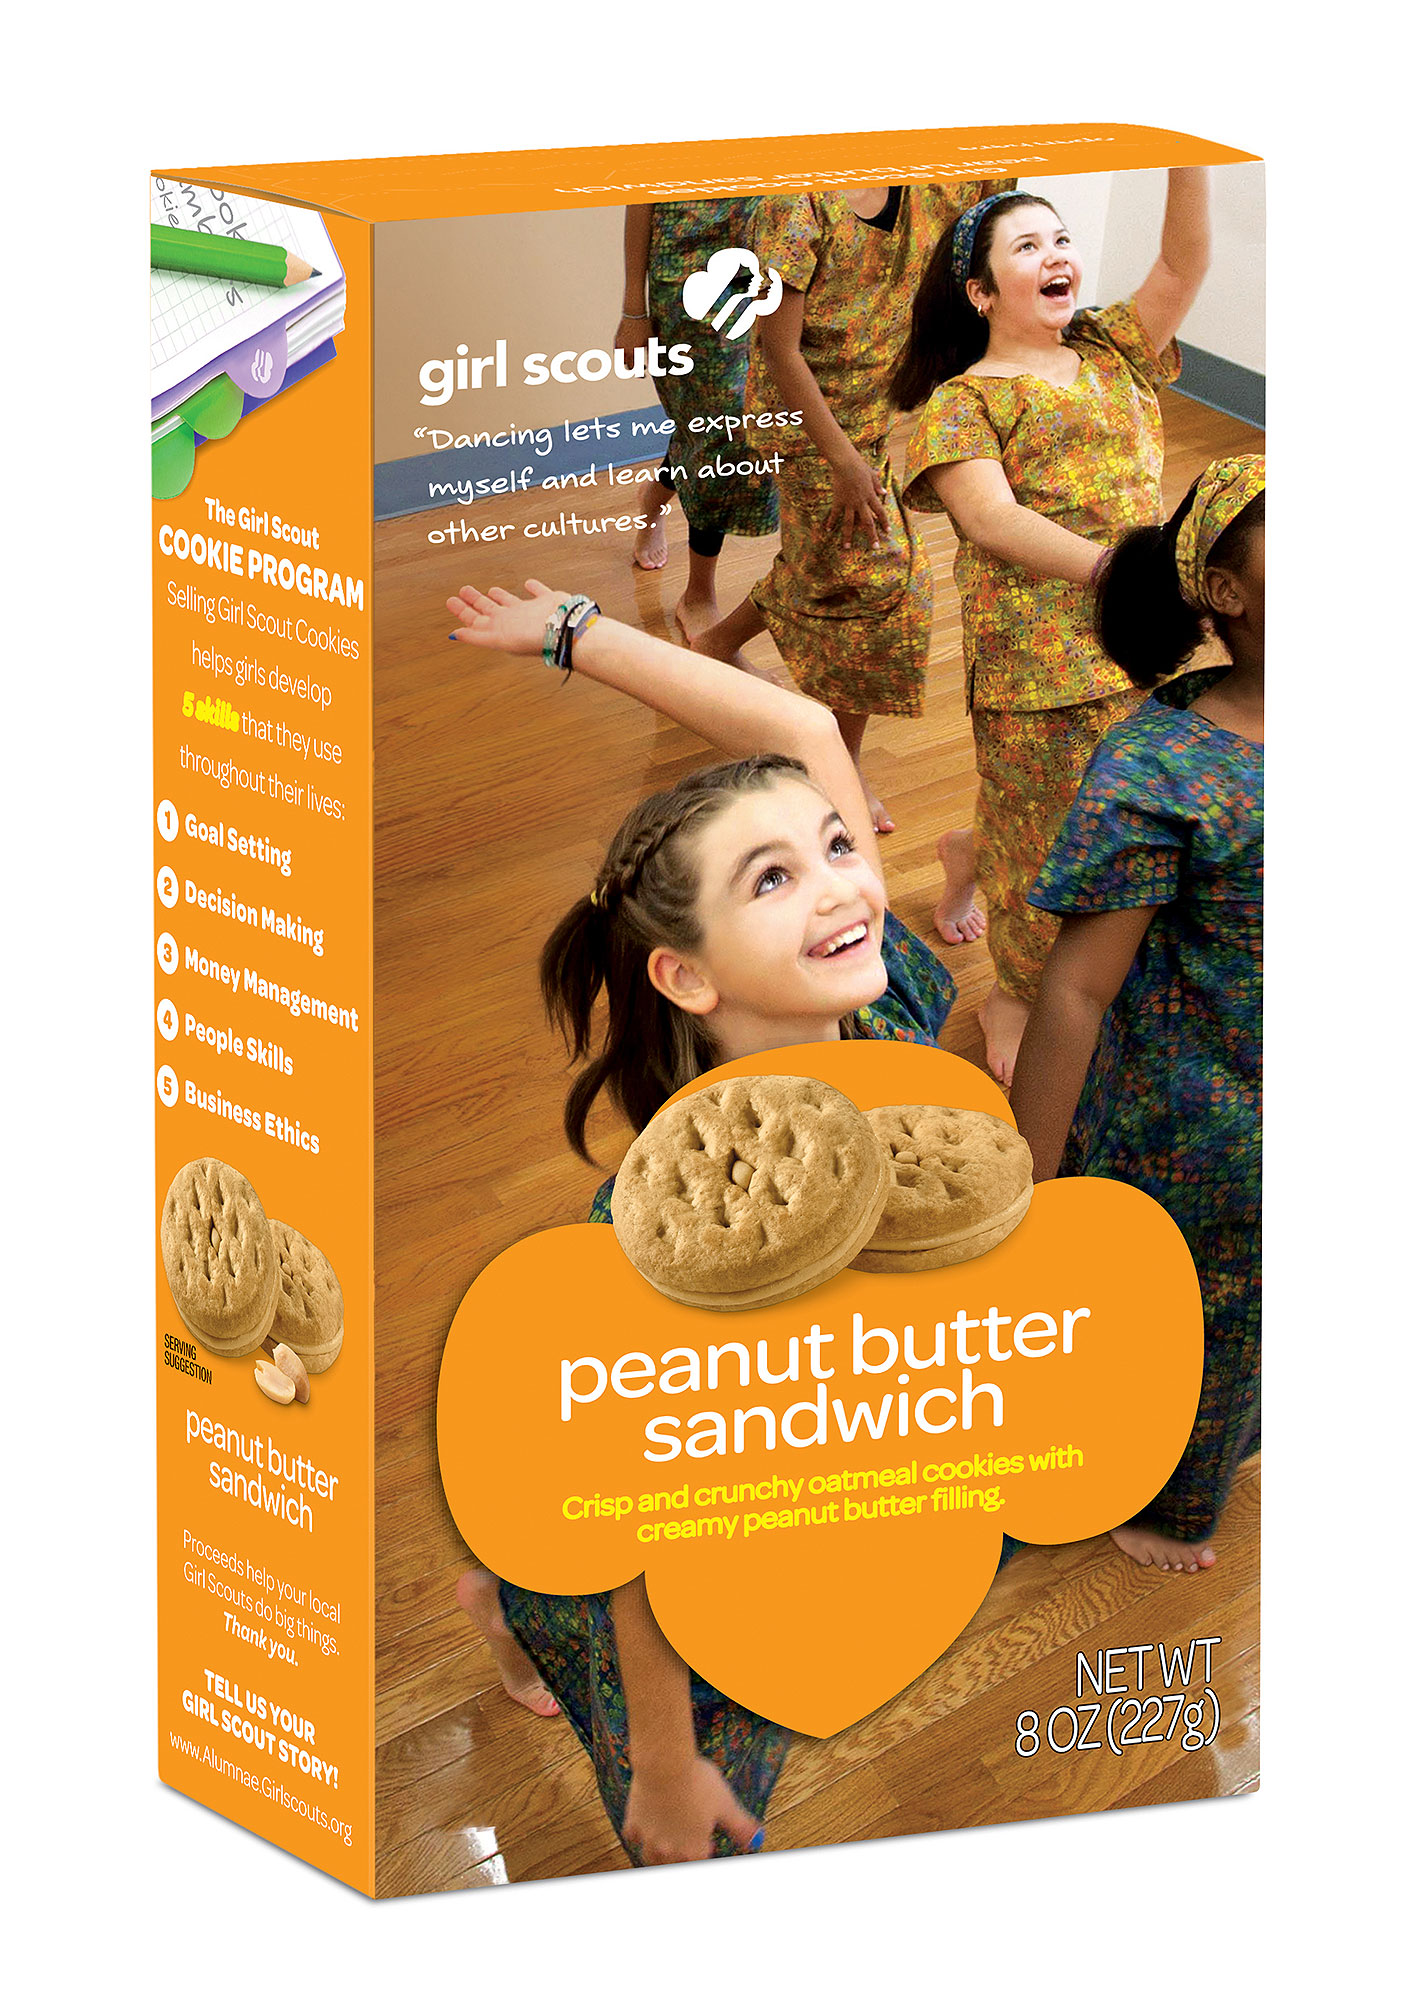 girl-scout-cookies-5